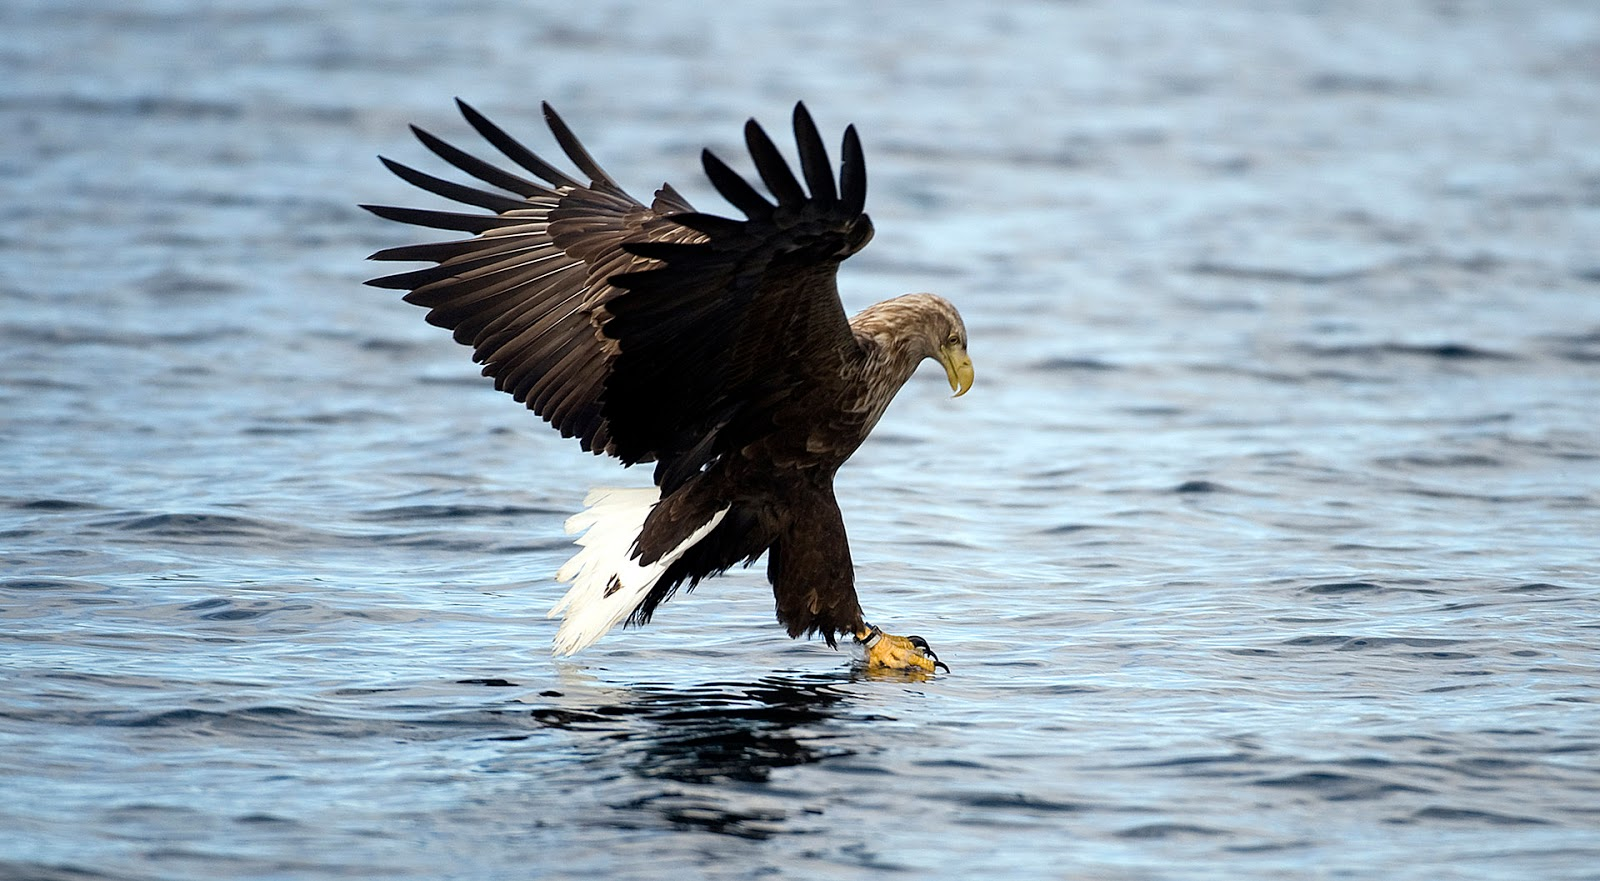 Using a little fish bait, our captains coaxed the eagles to swoop down upon their prey. Photo: © Marten Bril, VisitVesteralen.com, Andoey, Boe, Hadsel, Loedingen, Sortland, ksnes.